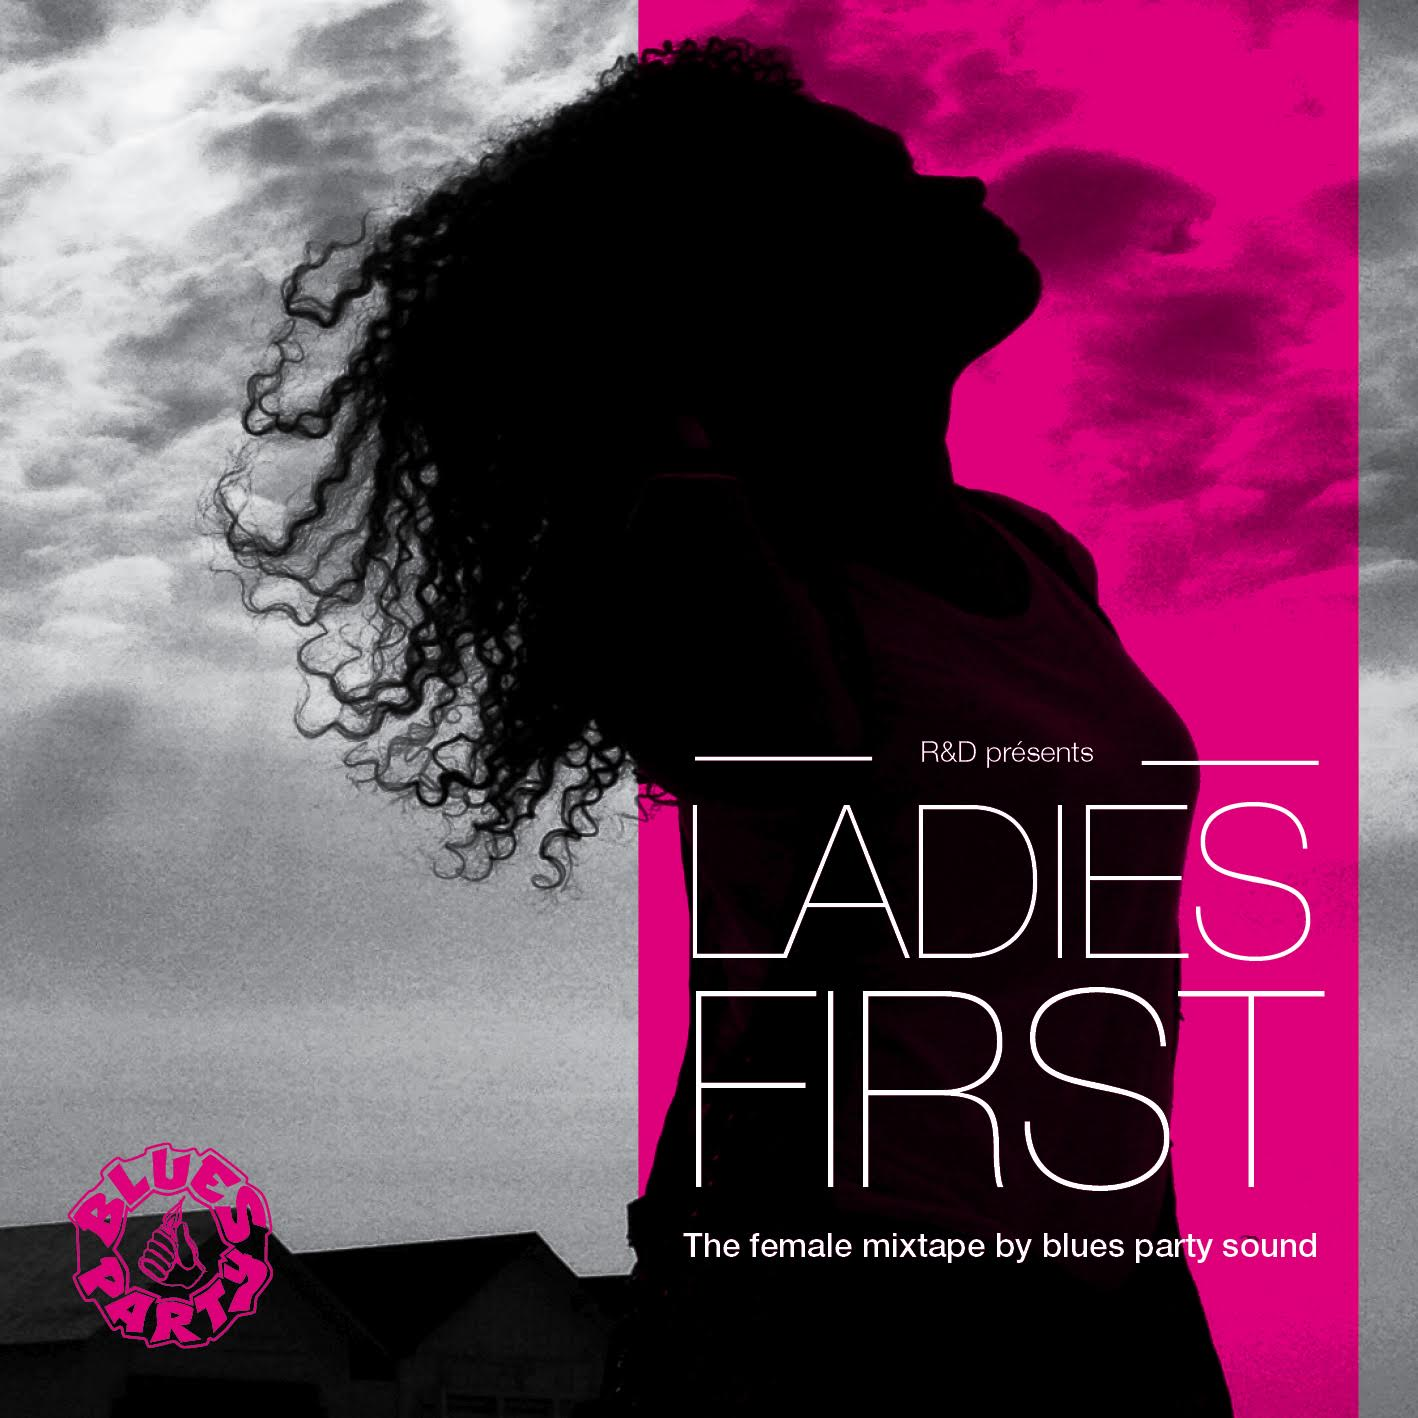 LADIES FIRST the female mixtape by Blues Party sound (8th march 2016 international women's day)